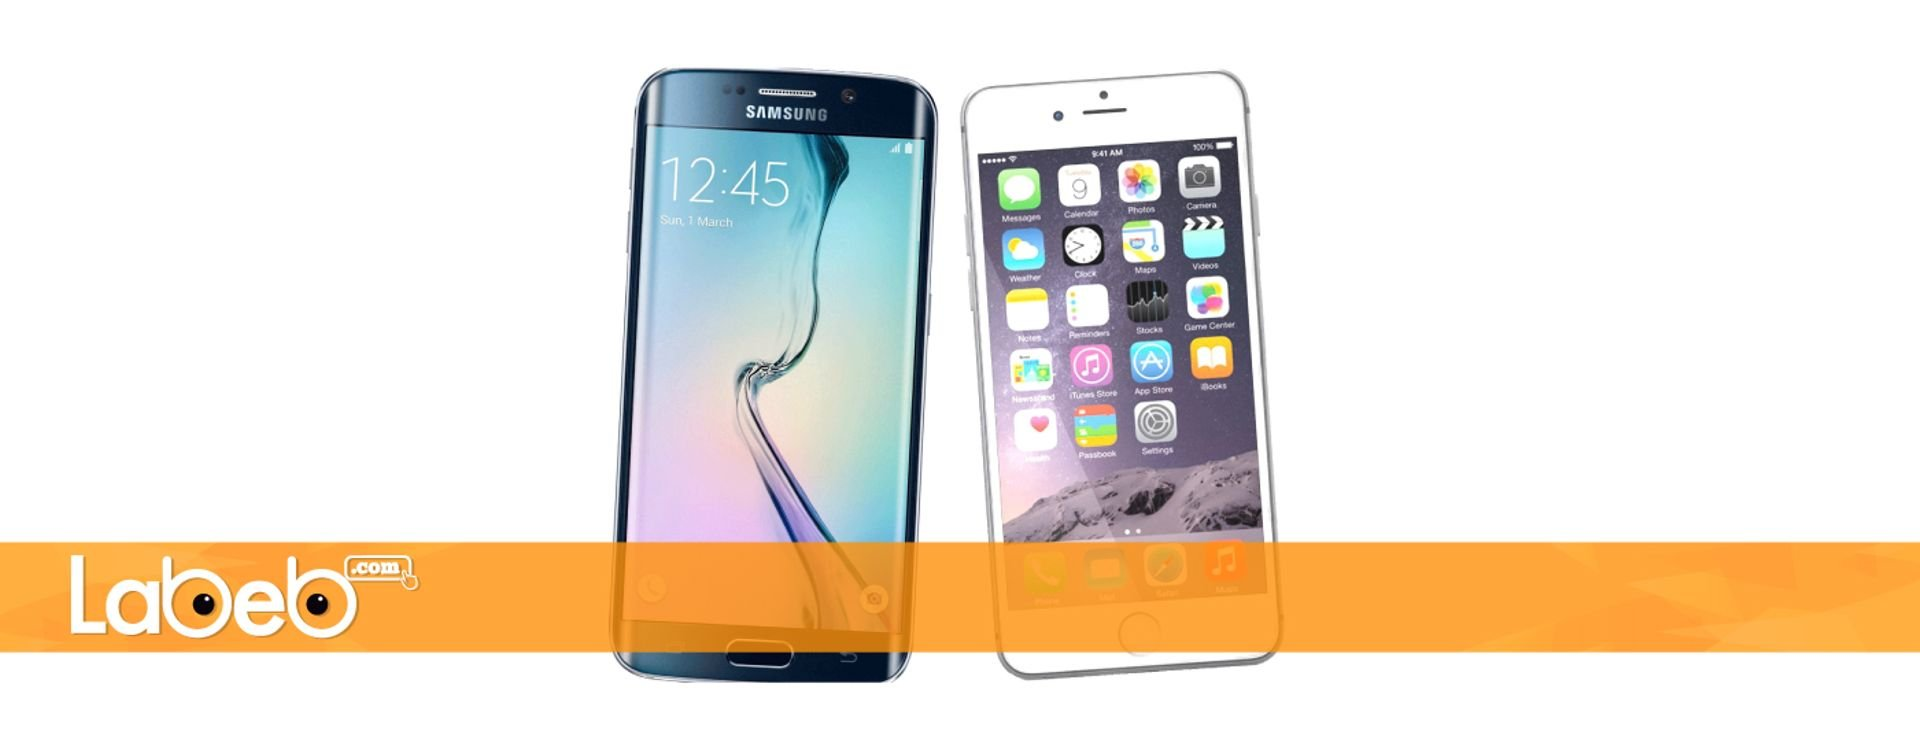 The Main Differences Between iPhone 6 and Galaxy S6